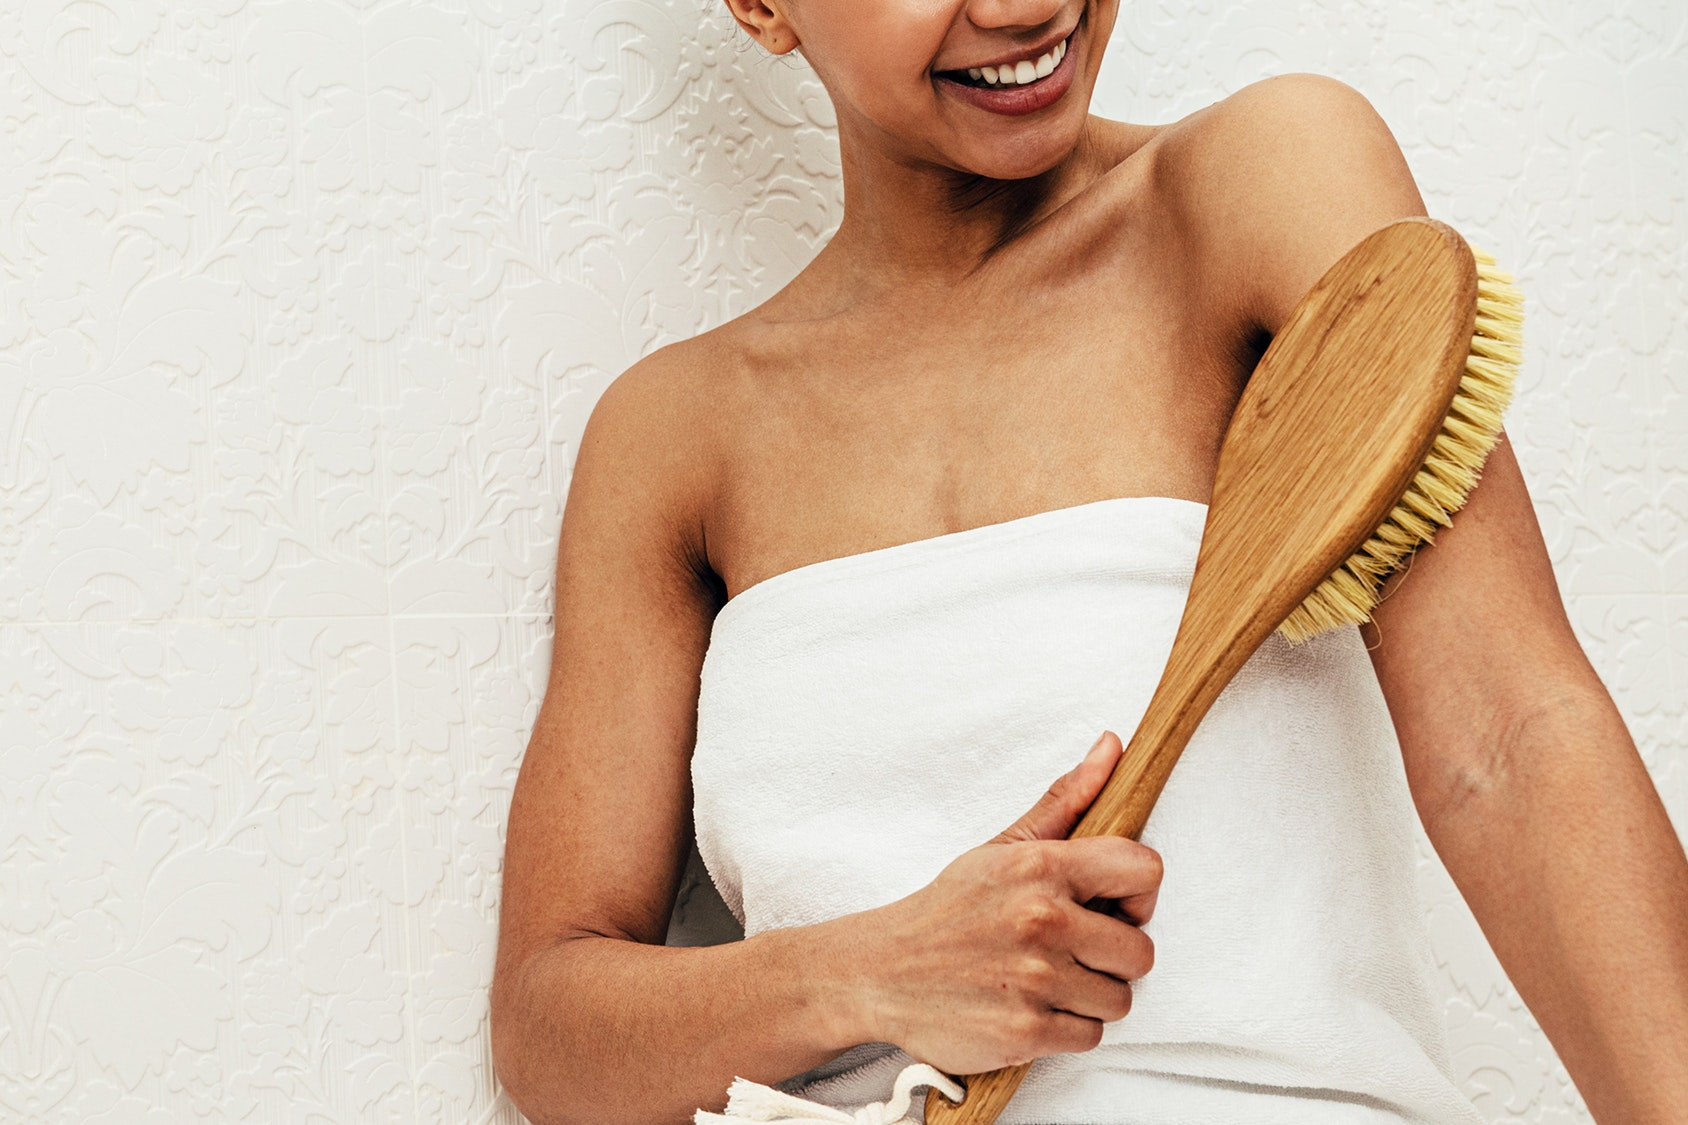 Could This Centuries-Old Beauty Ritual Be the Key to Healthy, Glowing Skin?